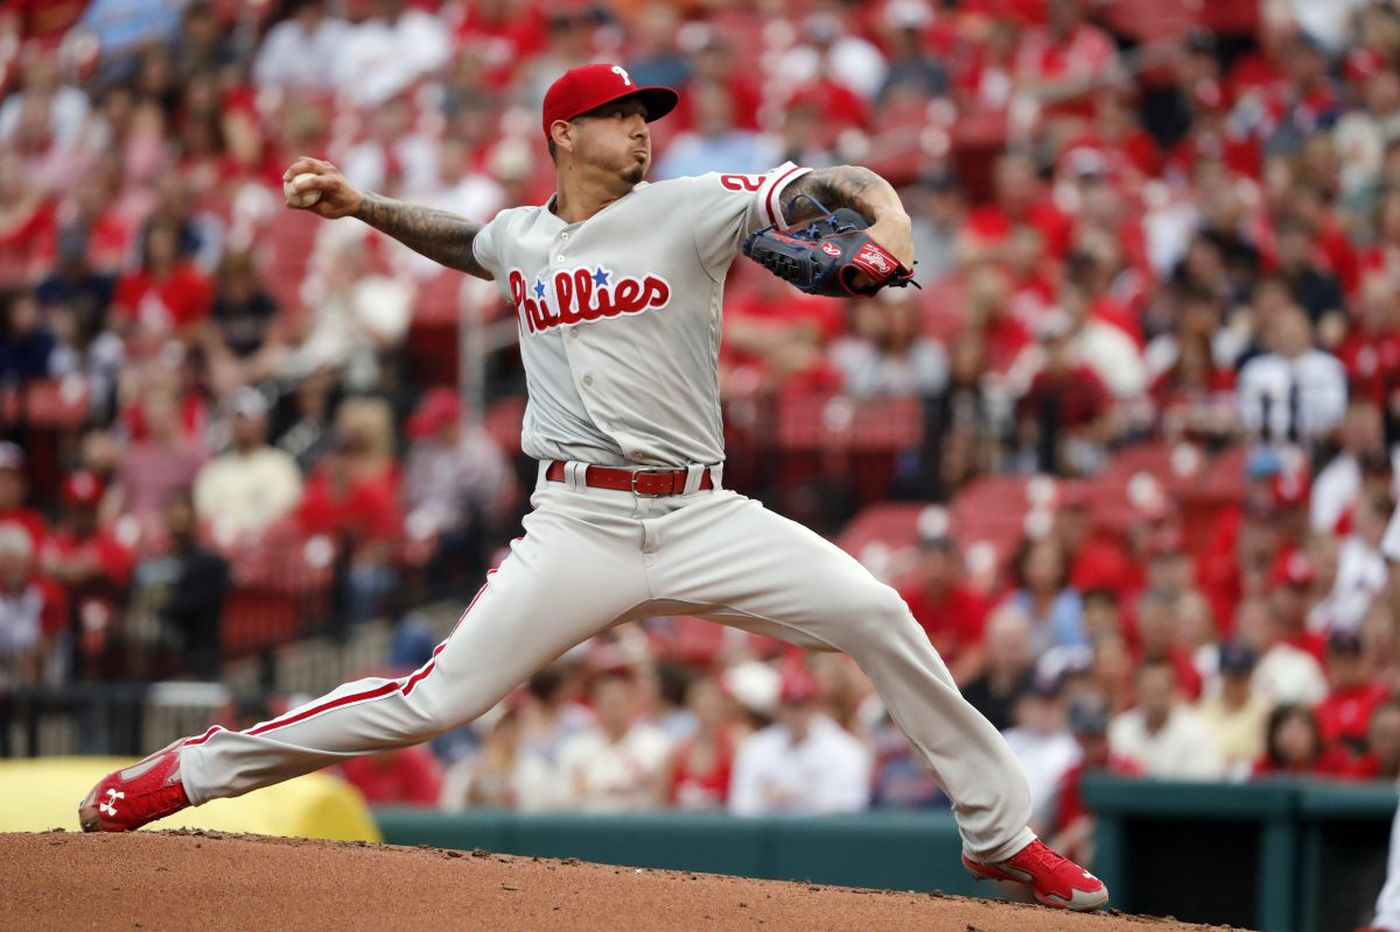 Phillies' Vince Velasquez uses music to calm himself on the mound